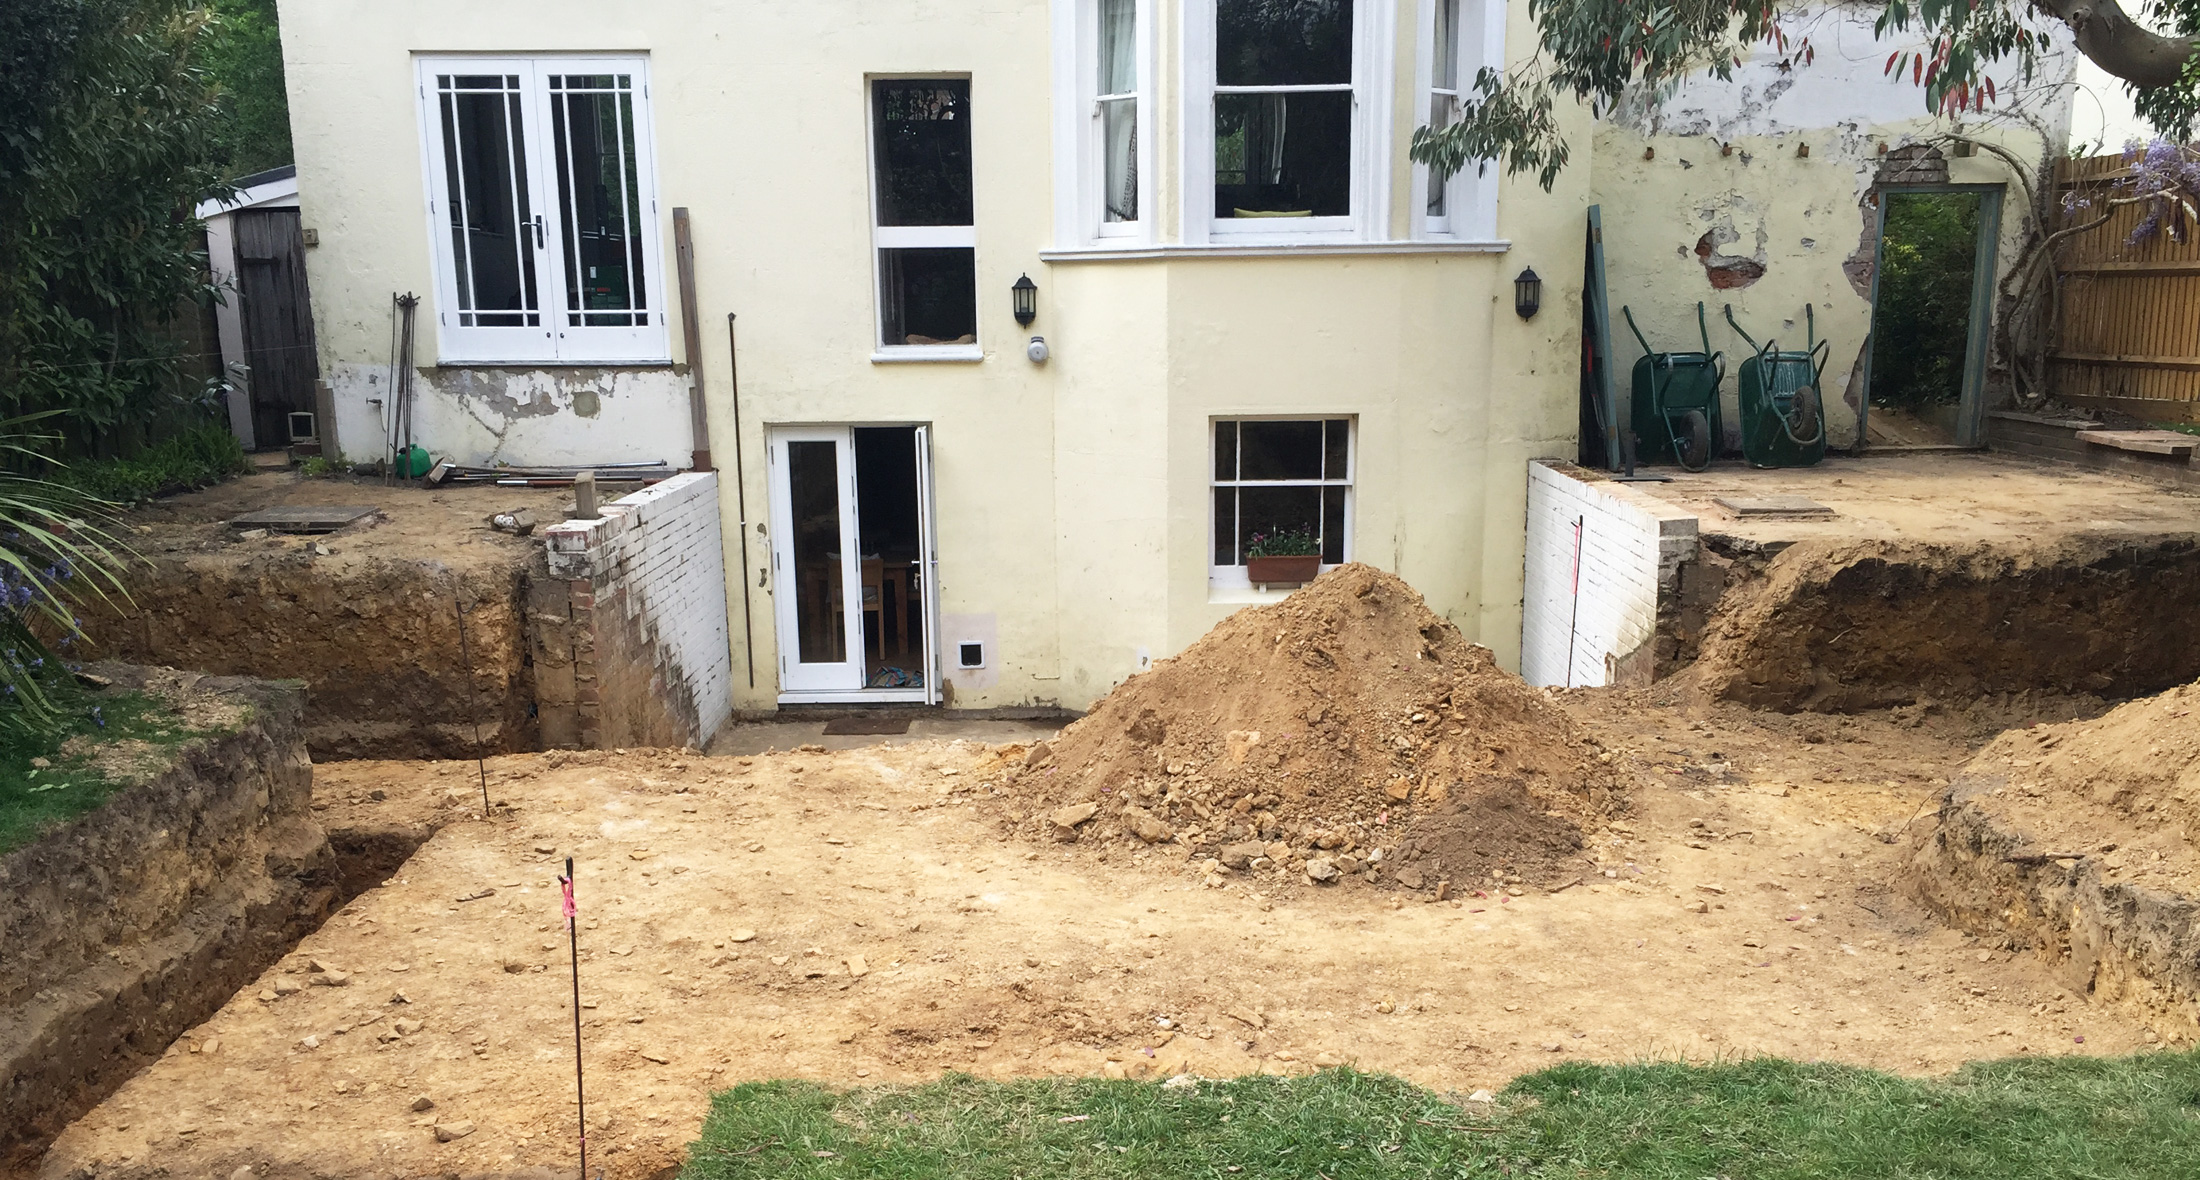 Garden in Tunbridge Wells during site levels preparation